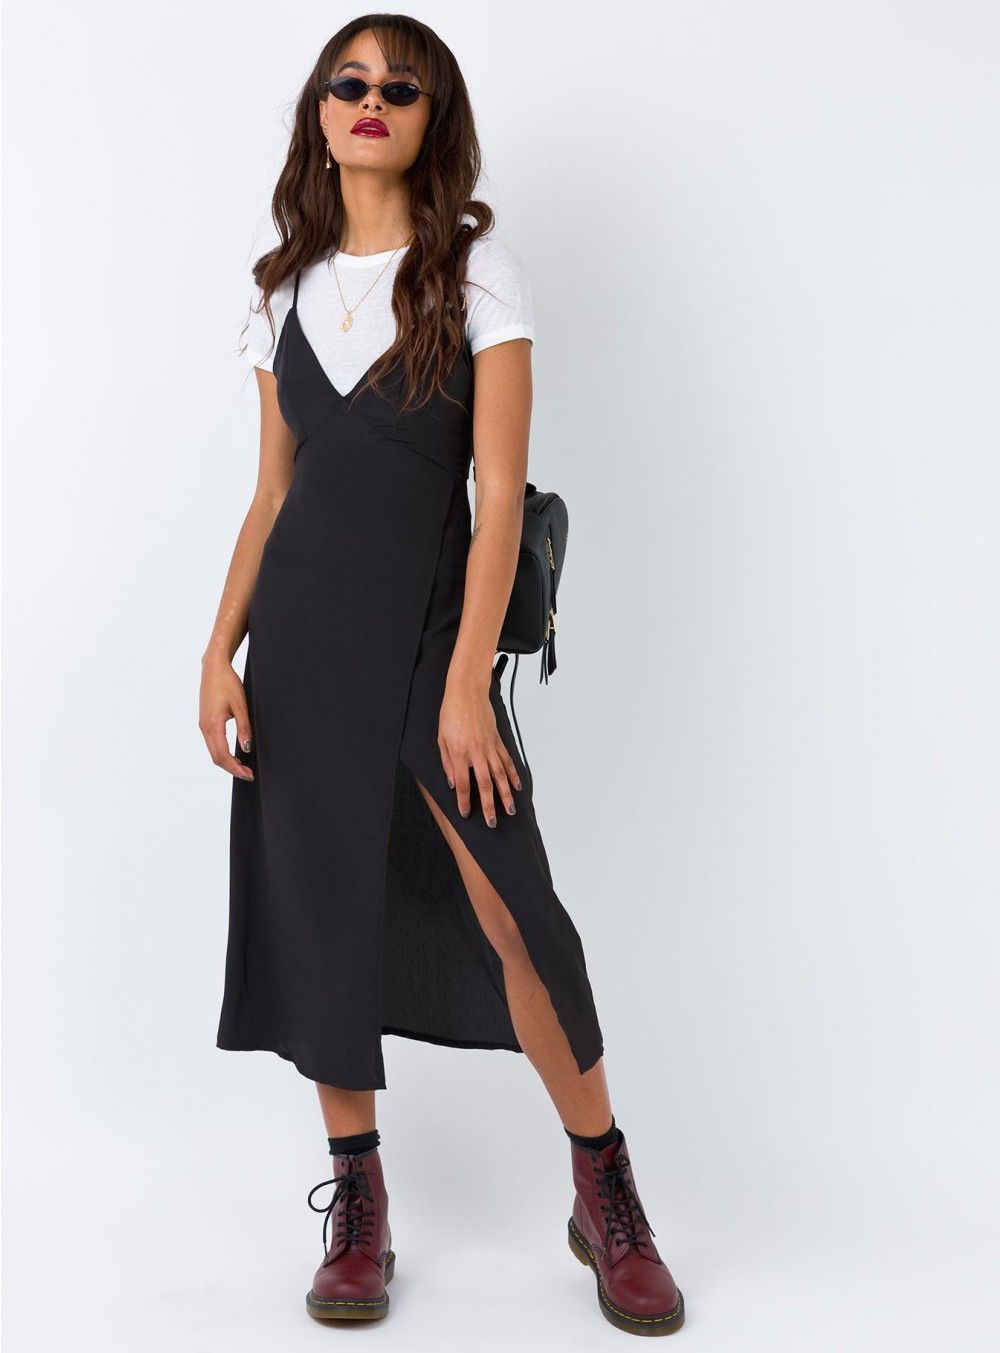 89d05efaac3 Dusk In The Amazon Dress Black - front view | Clothes | Amazon ...